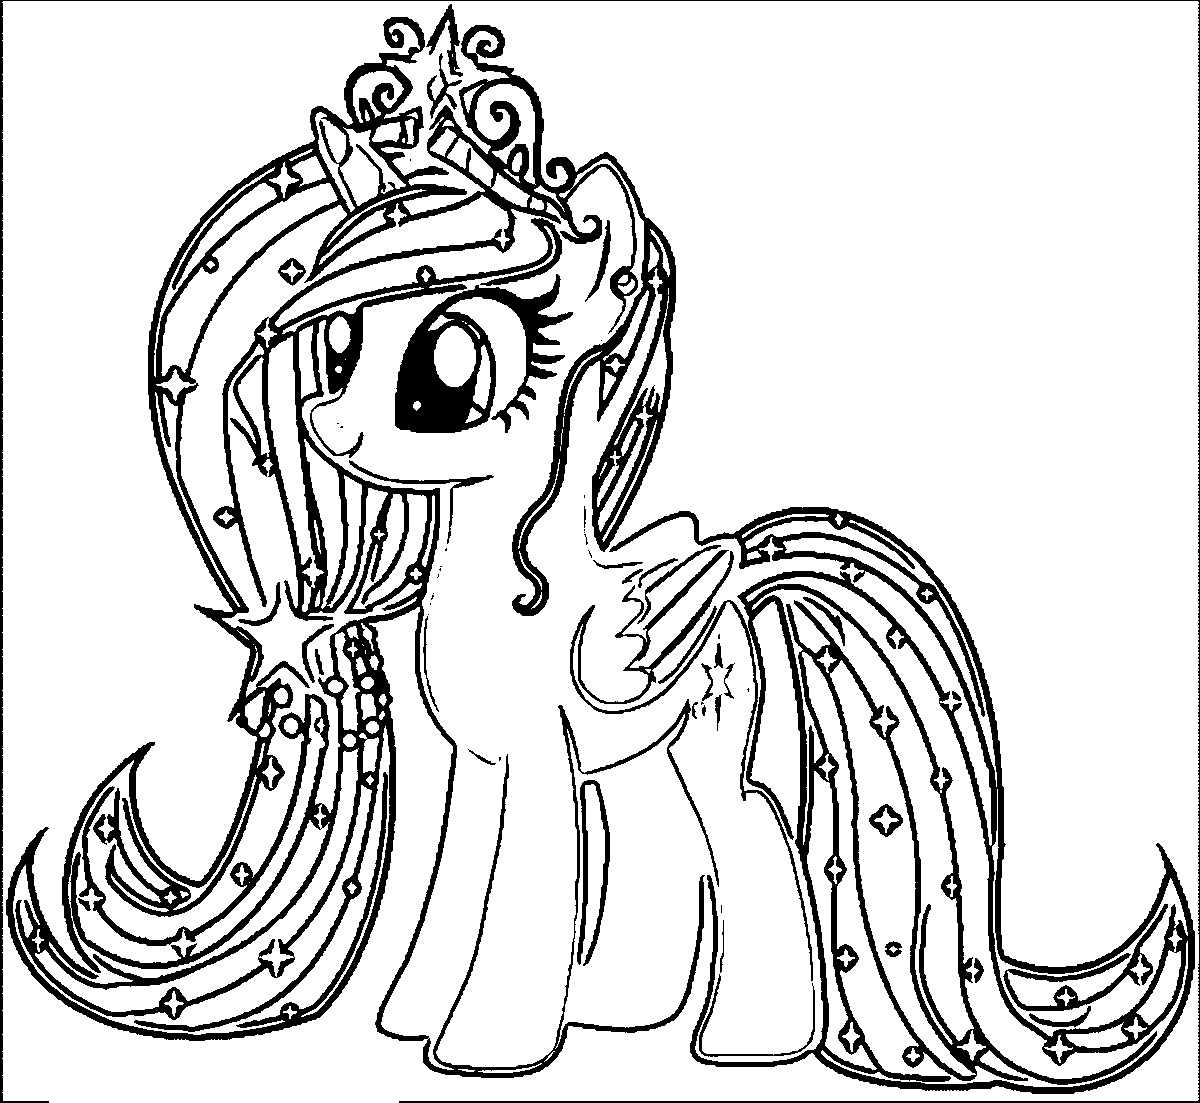 my little pony color sheet new cute my little pony coloring pages new coloring pages pony little color my sheet